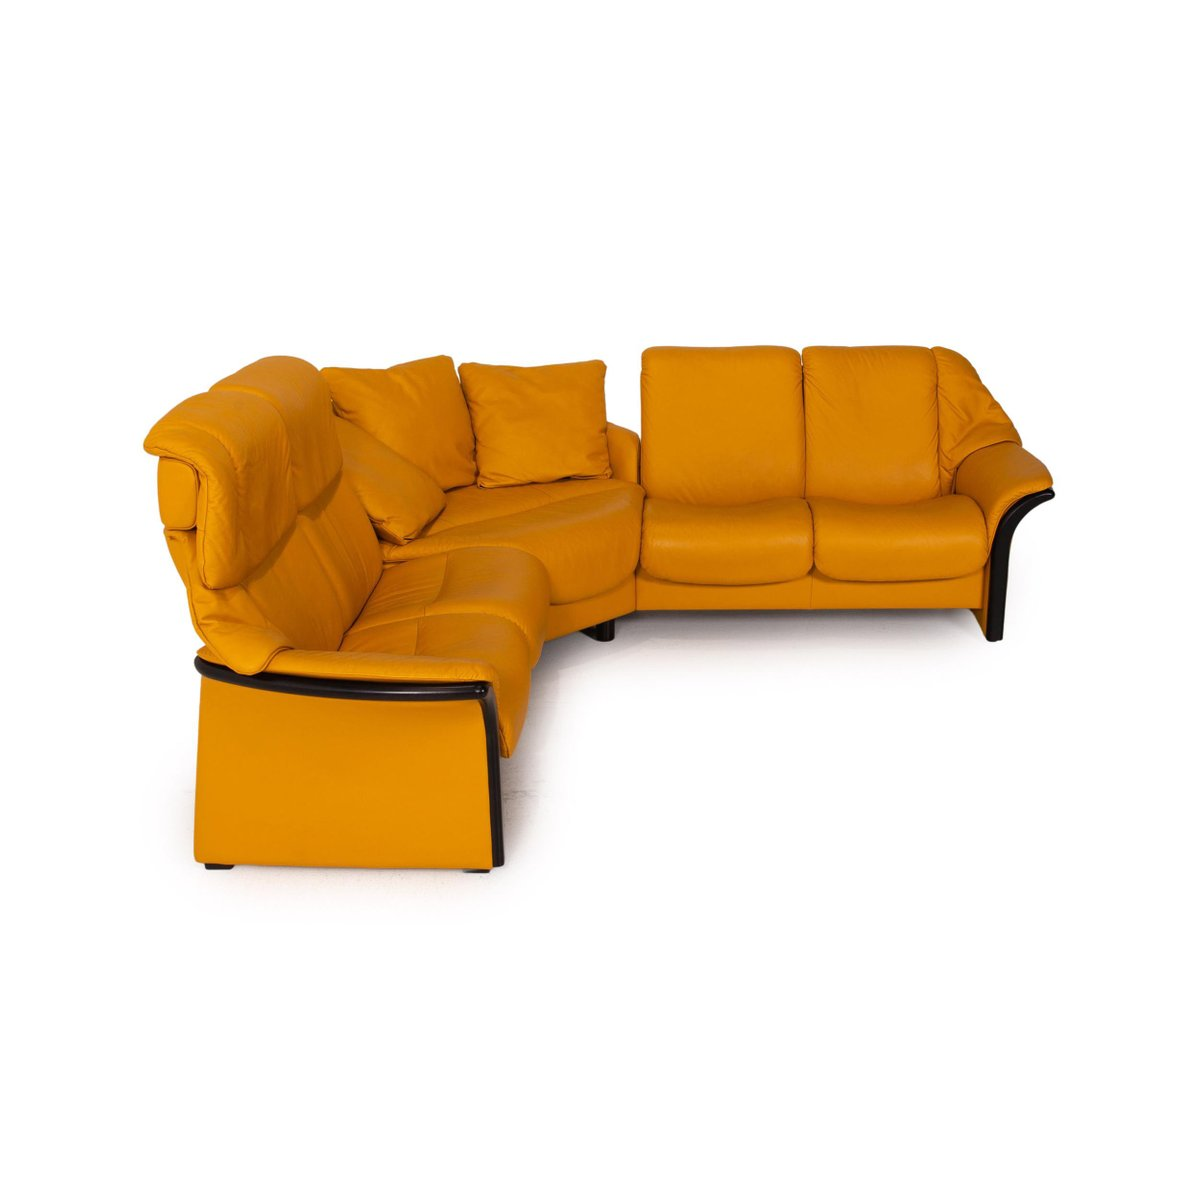 Eldorado Yellow Leather Corner Sofa From Stressless For Sale At Pamono